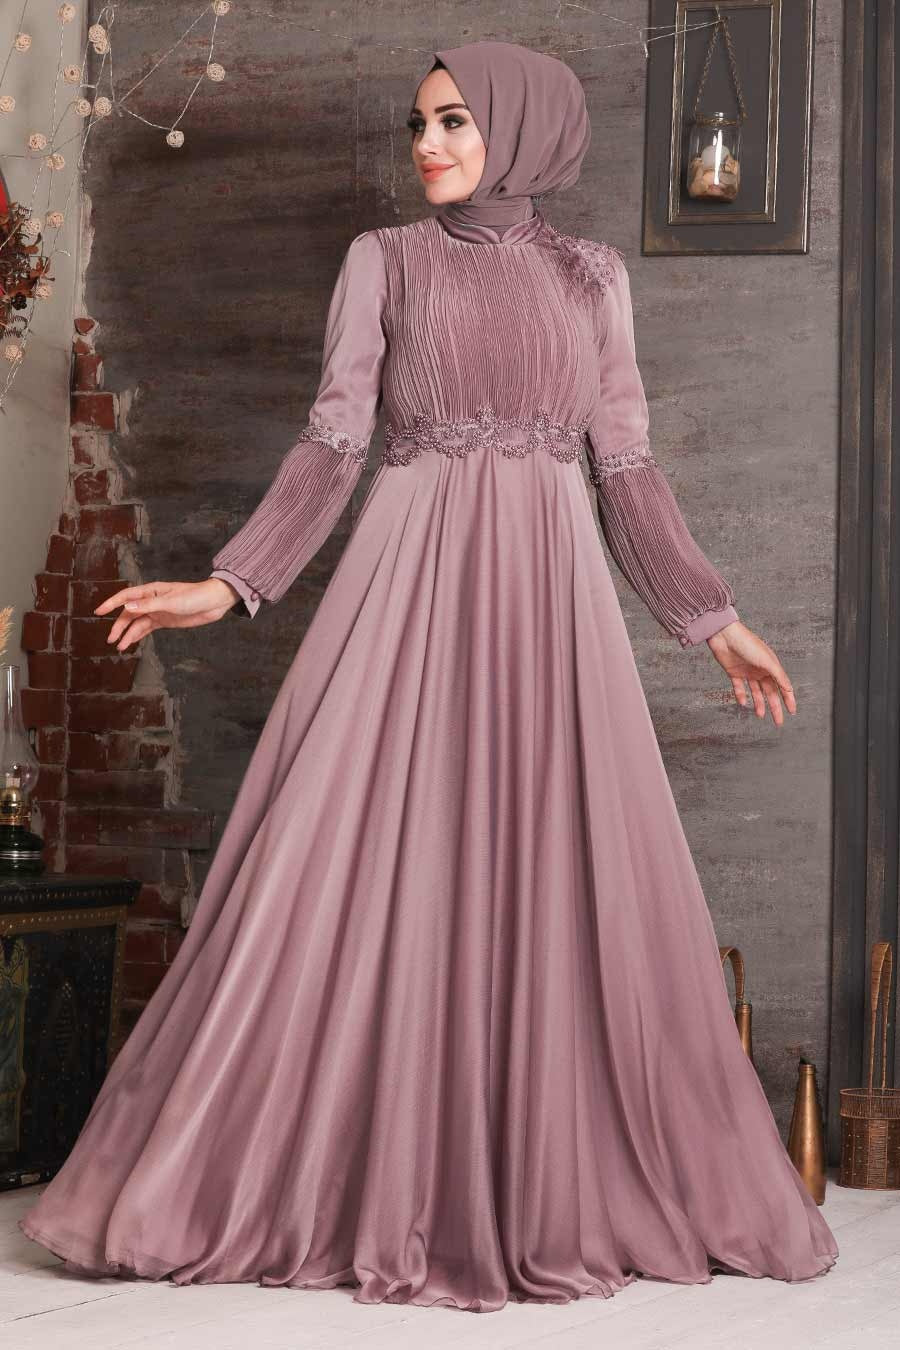 Women's Bead Embroidered Dusty Rose Modest Evening Dress